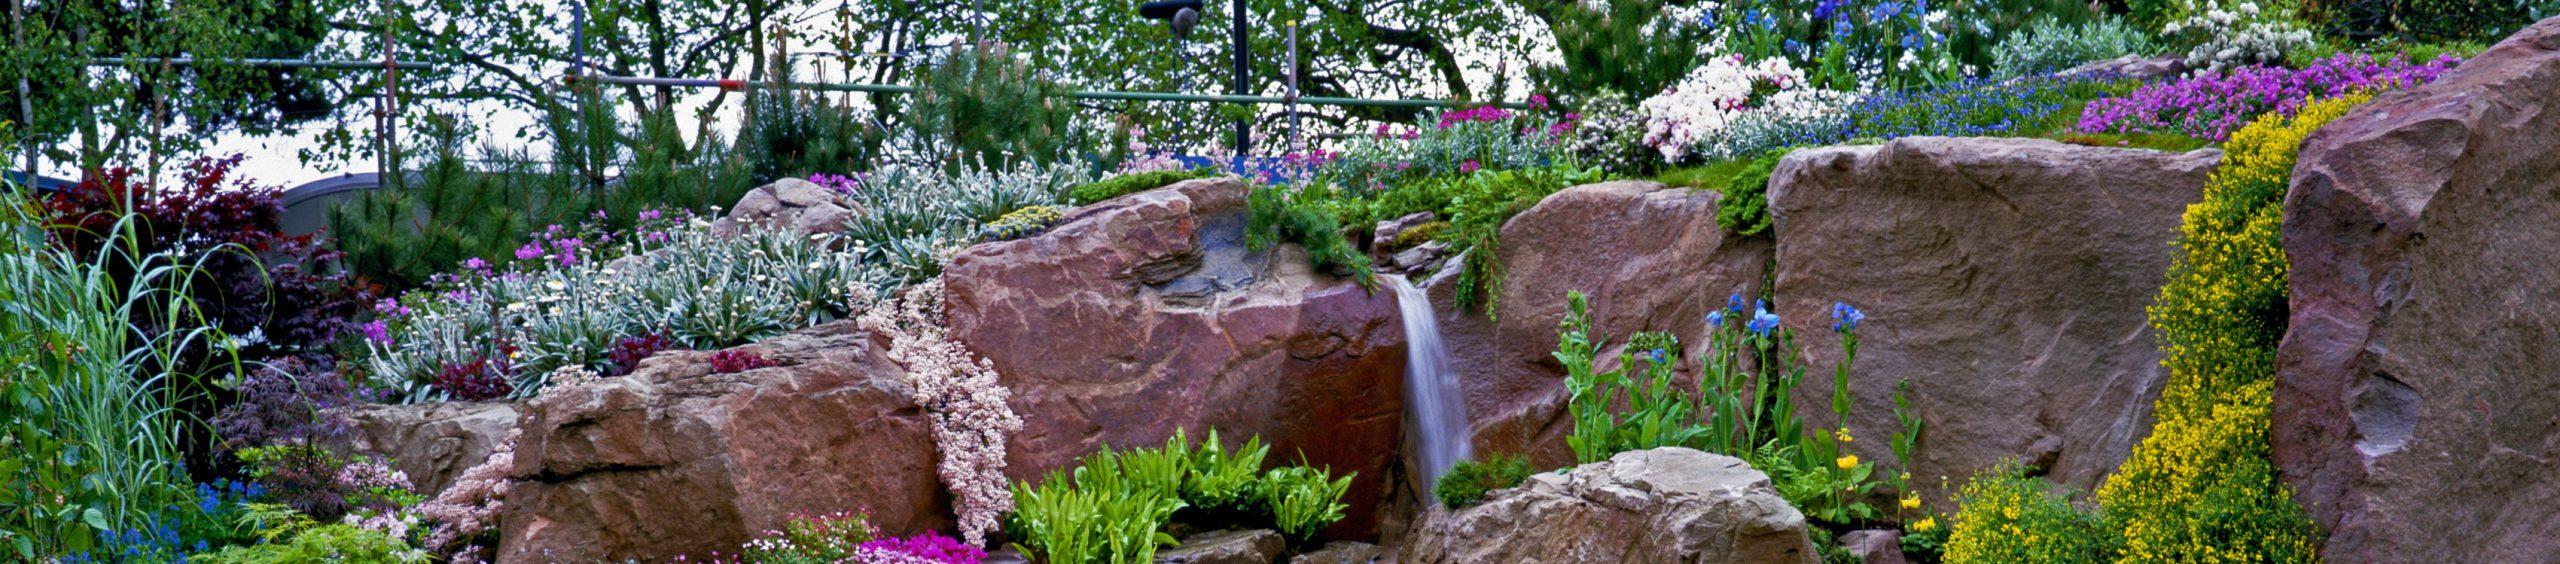 landscaper-bricks-rockery-hero-background-new